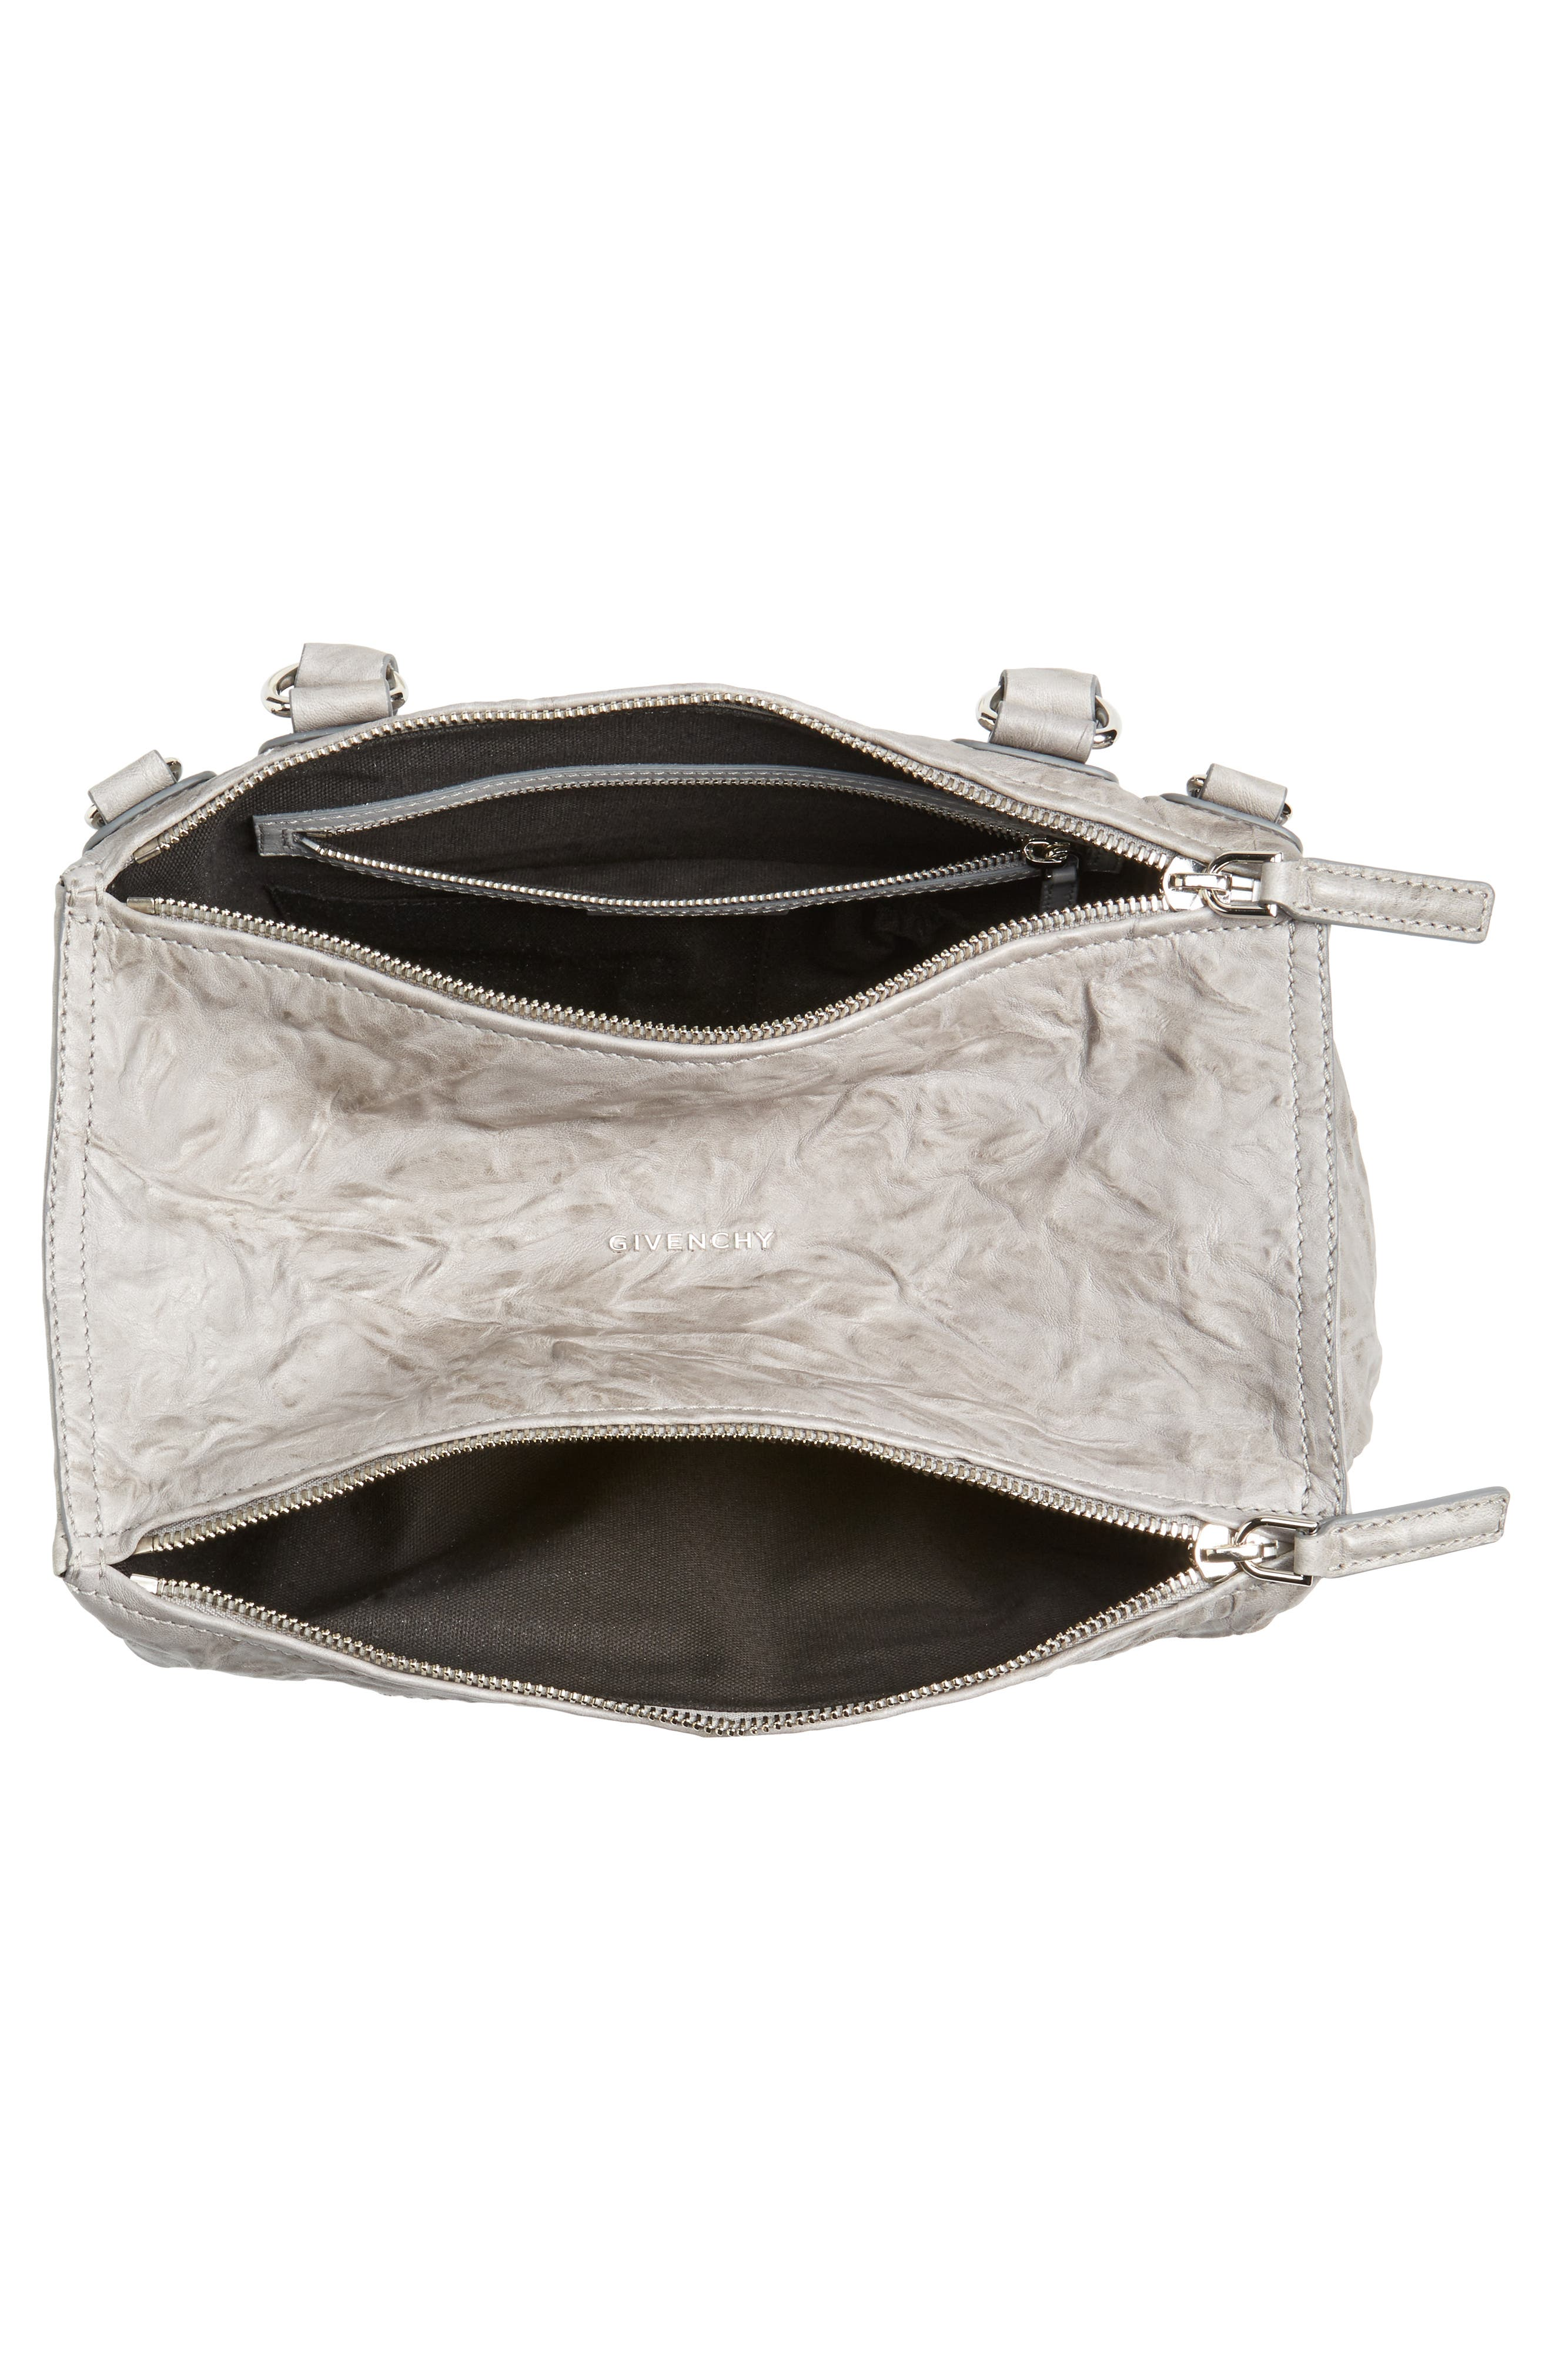 'Medium Pepe Pandora' Leather Satchel,                             Alternate thumbnail 4, color,                             PEARL GREY